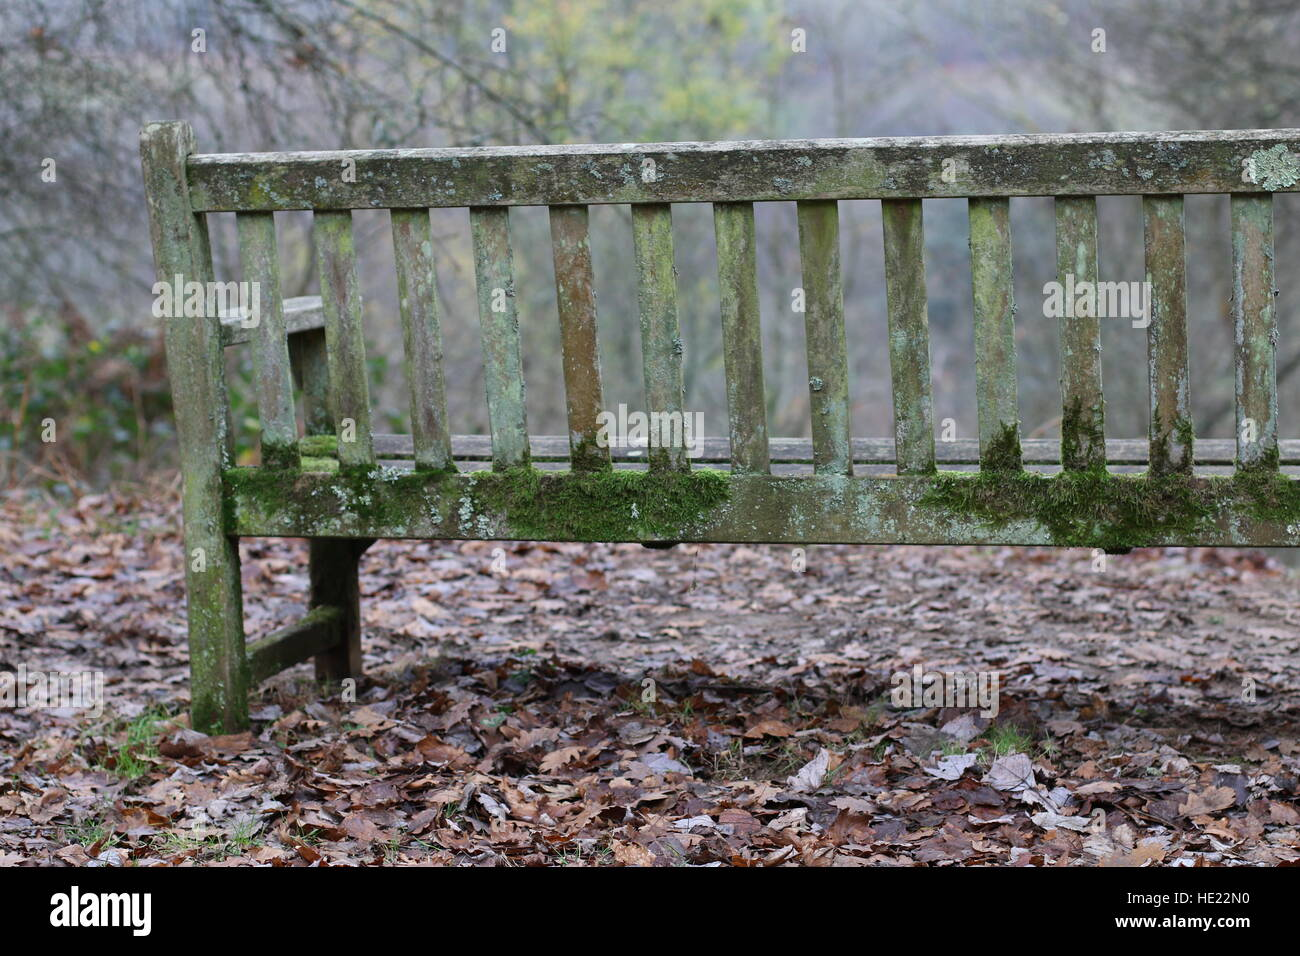 Green mould on a seat bench in winter with leaves on the ground - Stock Image